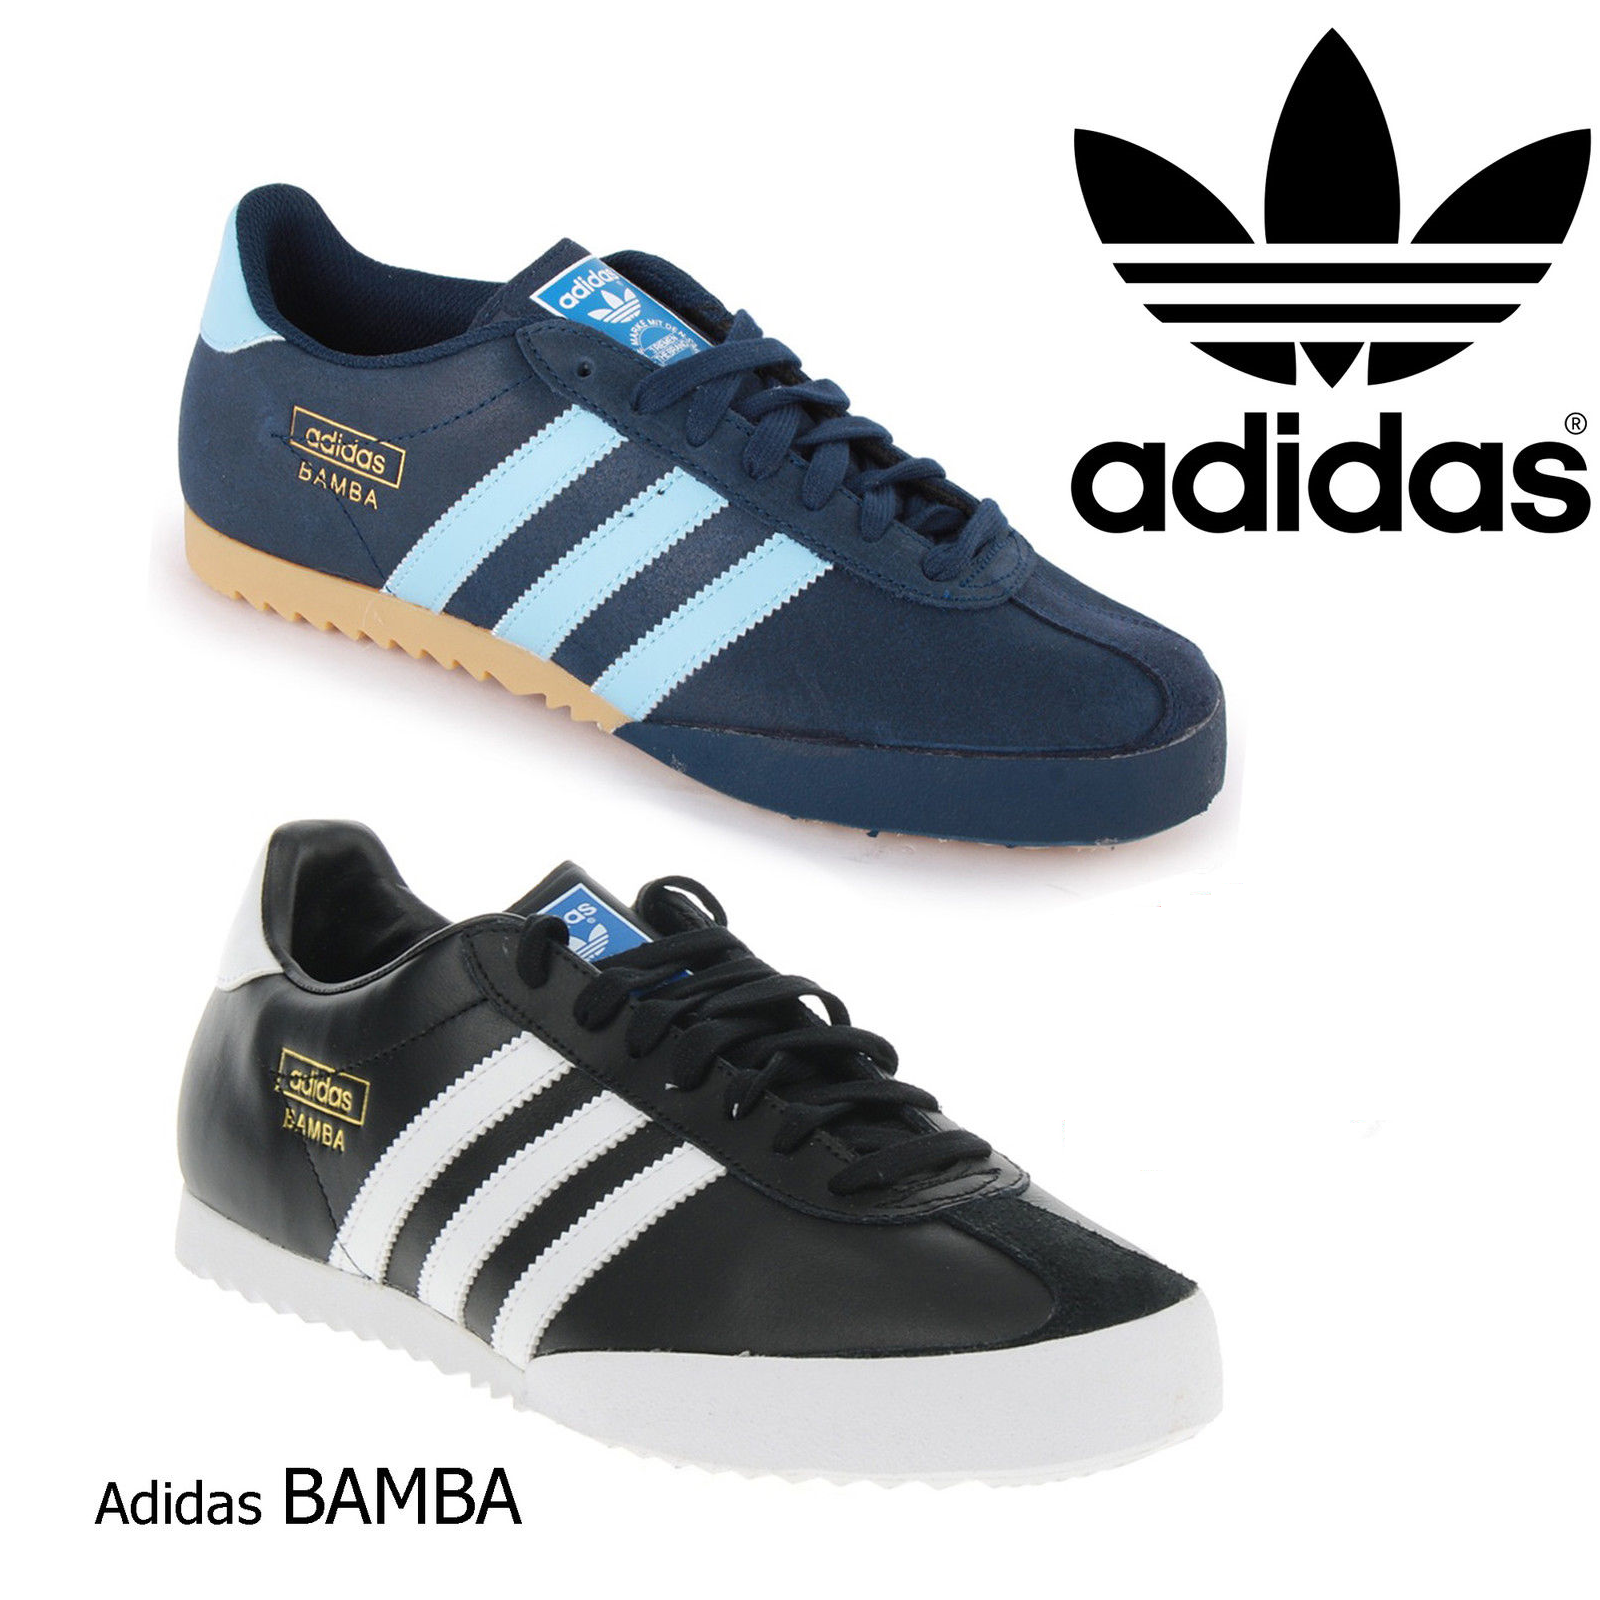 Adidas Originals retro Bamba Leather Hombre Casual retro Originals formadores zapatos comodos gran descuento c42cd6